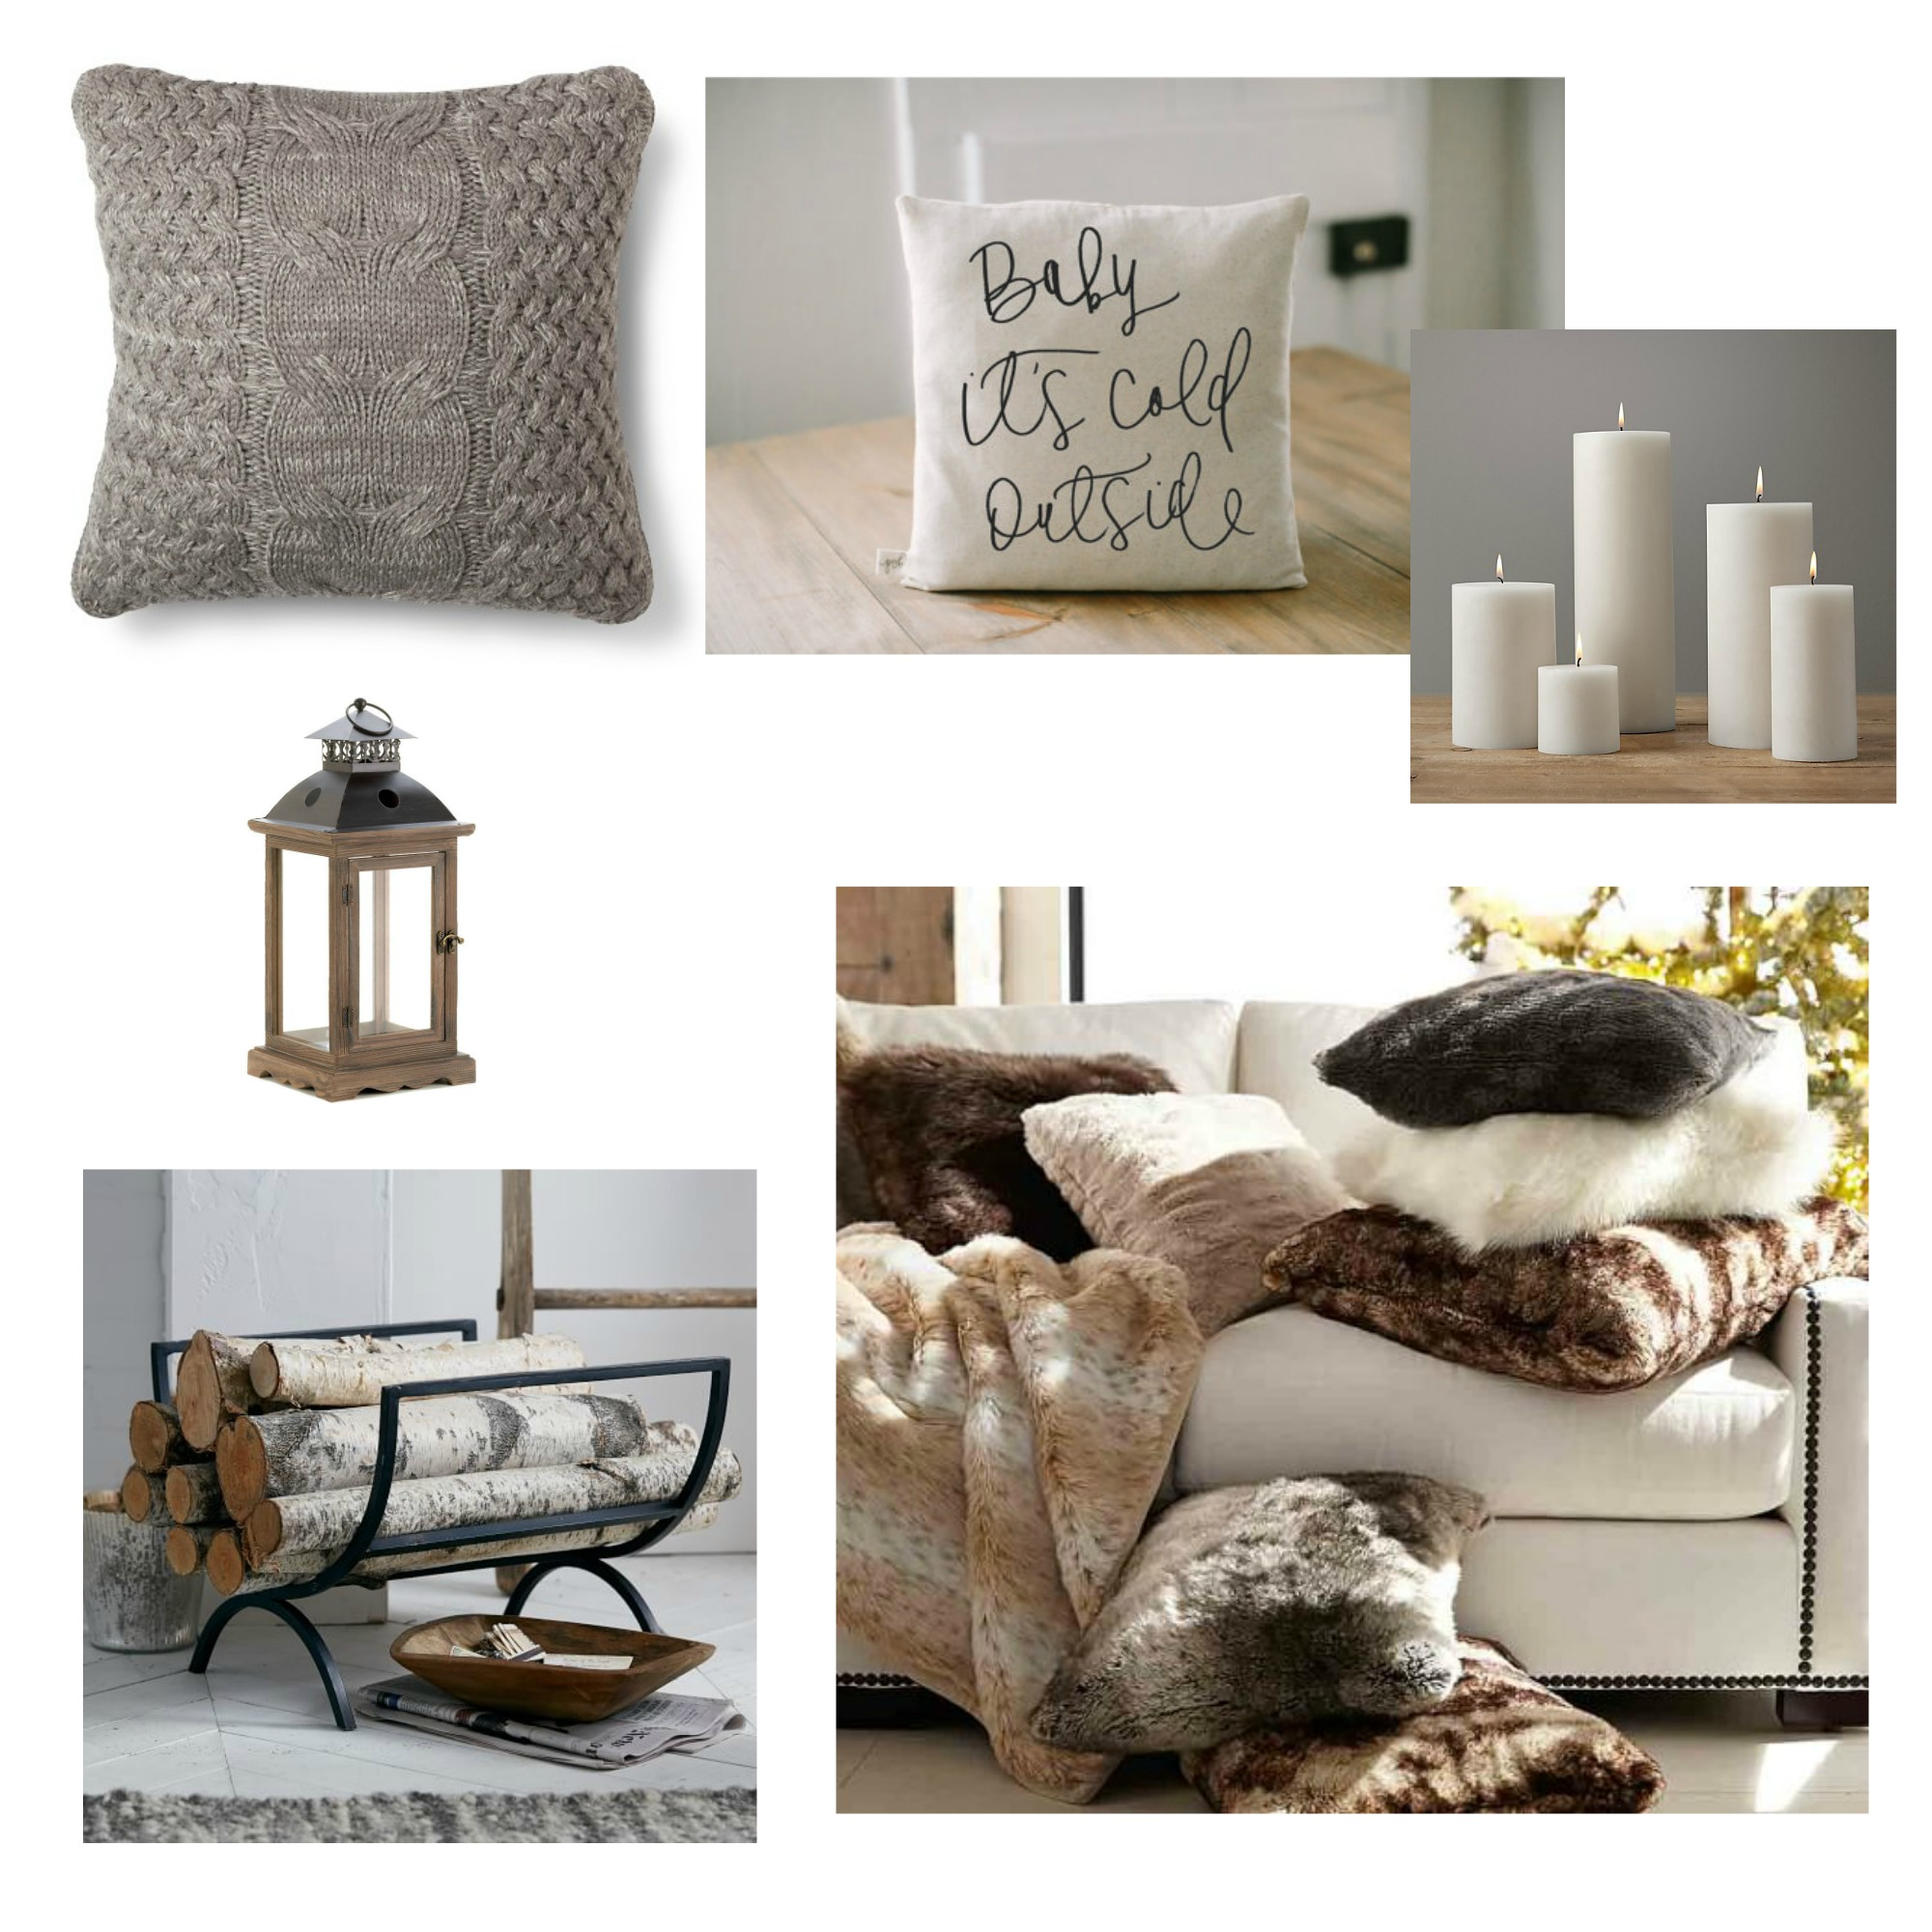 Winter decor ideas 2016 seeking lavendar lane for Where to get home decor